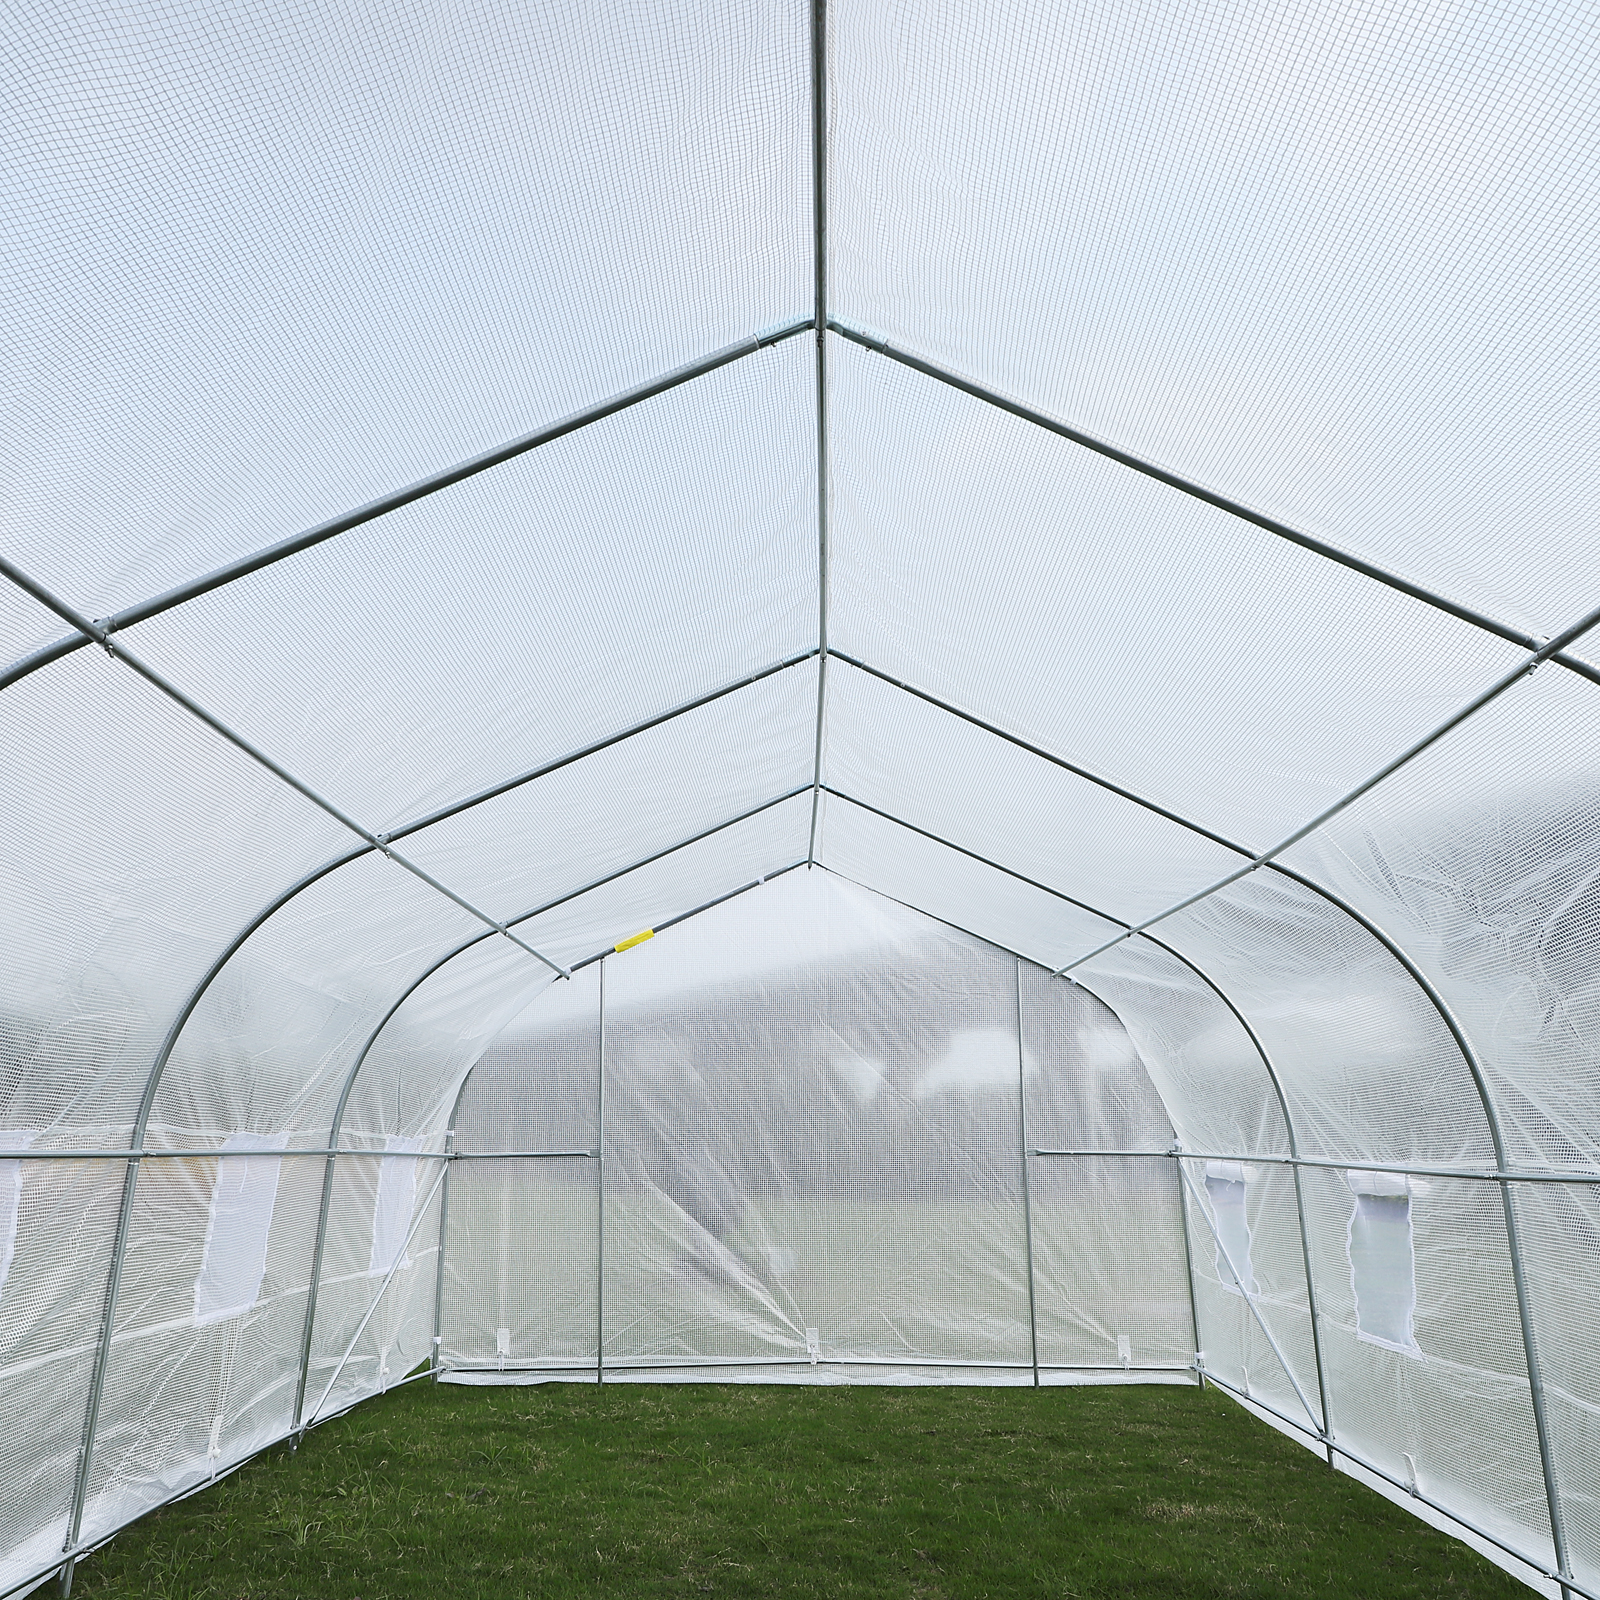 Outsunny-20x10x7ft-Walk-in-Outdoor-Tunnel-Greenhouse-Portable-Backyard-Plant thumbnail 21